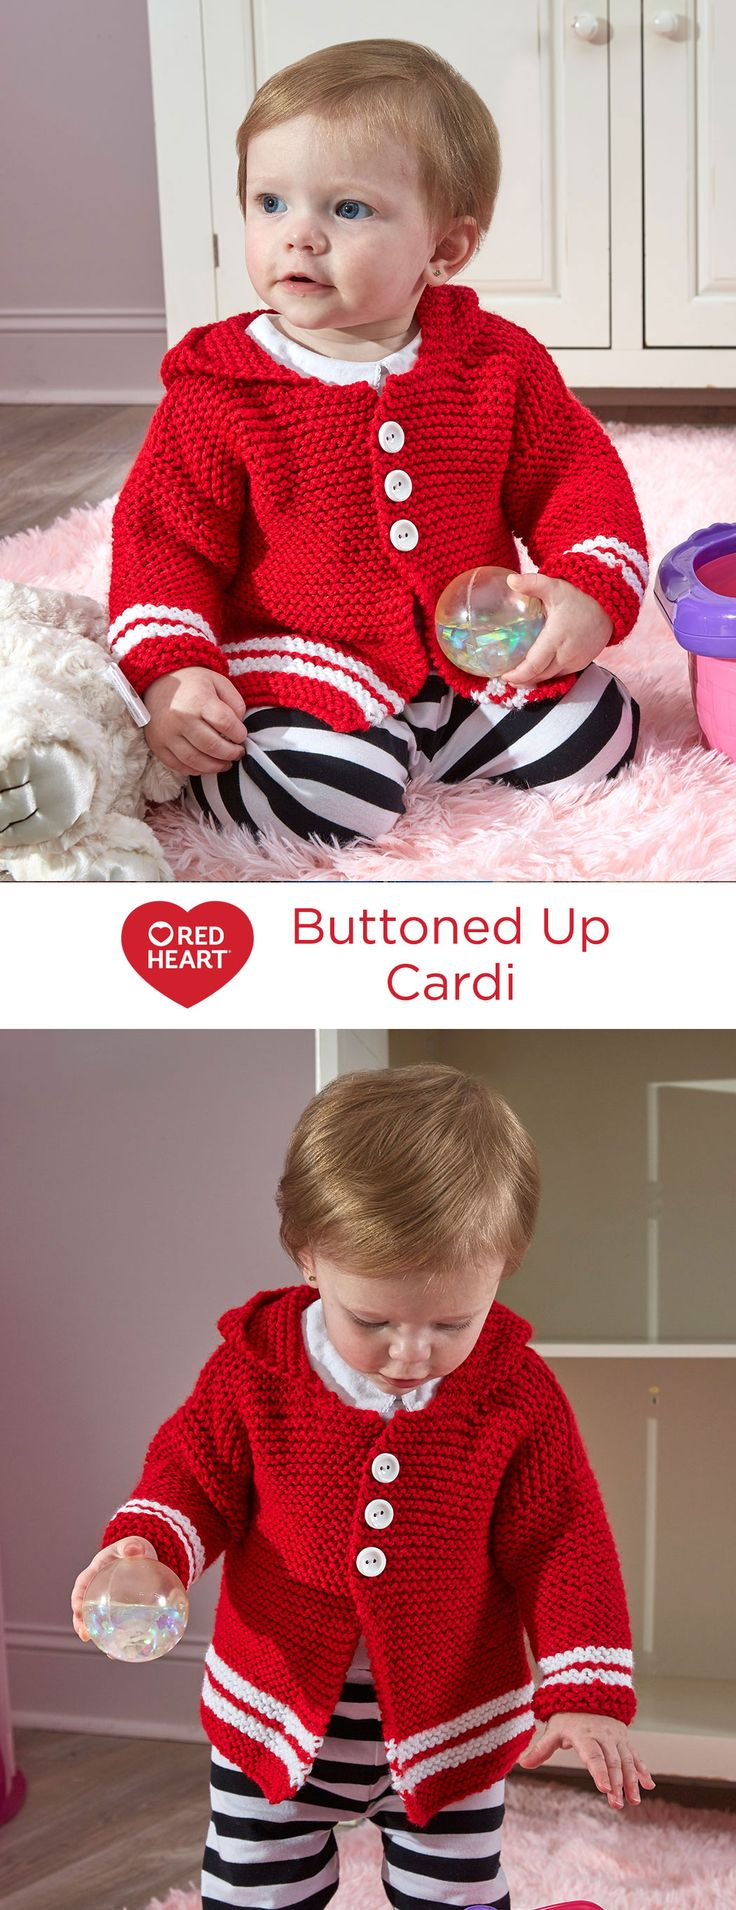 Buttoned Up Cardi Free Knitting Pattern in Red Heart Yarns -- This cute cardigan style sweater is easy to knit in garter stitch. Contrast stripes are added for style and the hood is attached for quick changing weather. Knit it with this tested yarn to help ensure baby's comfort.